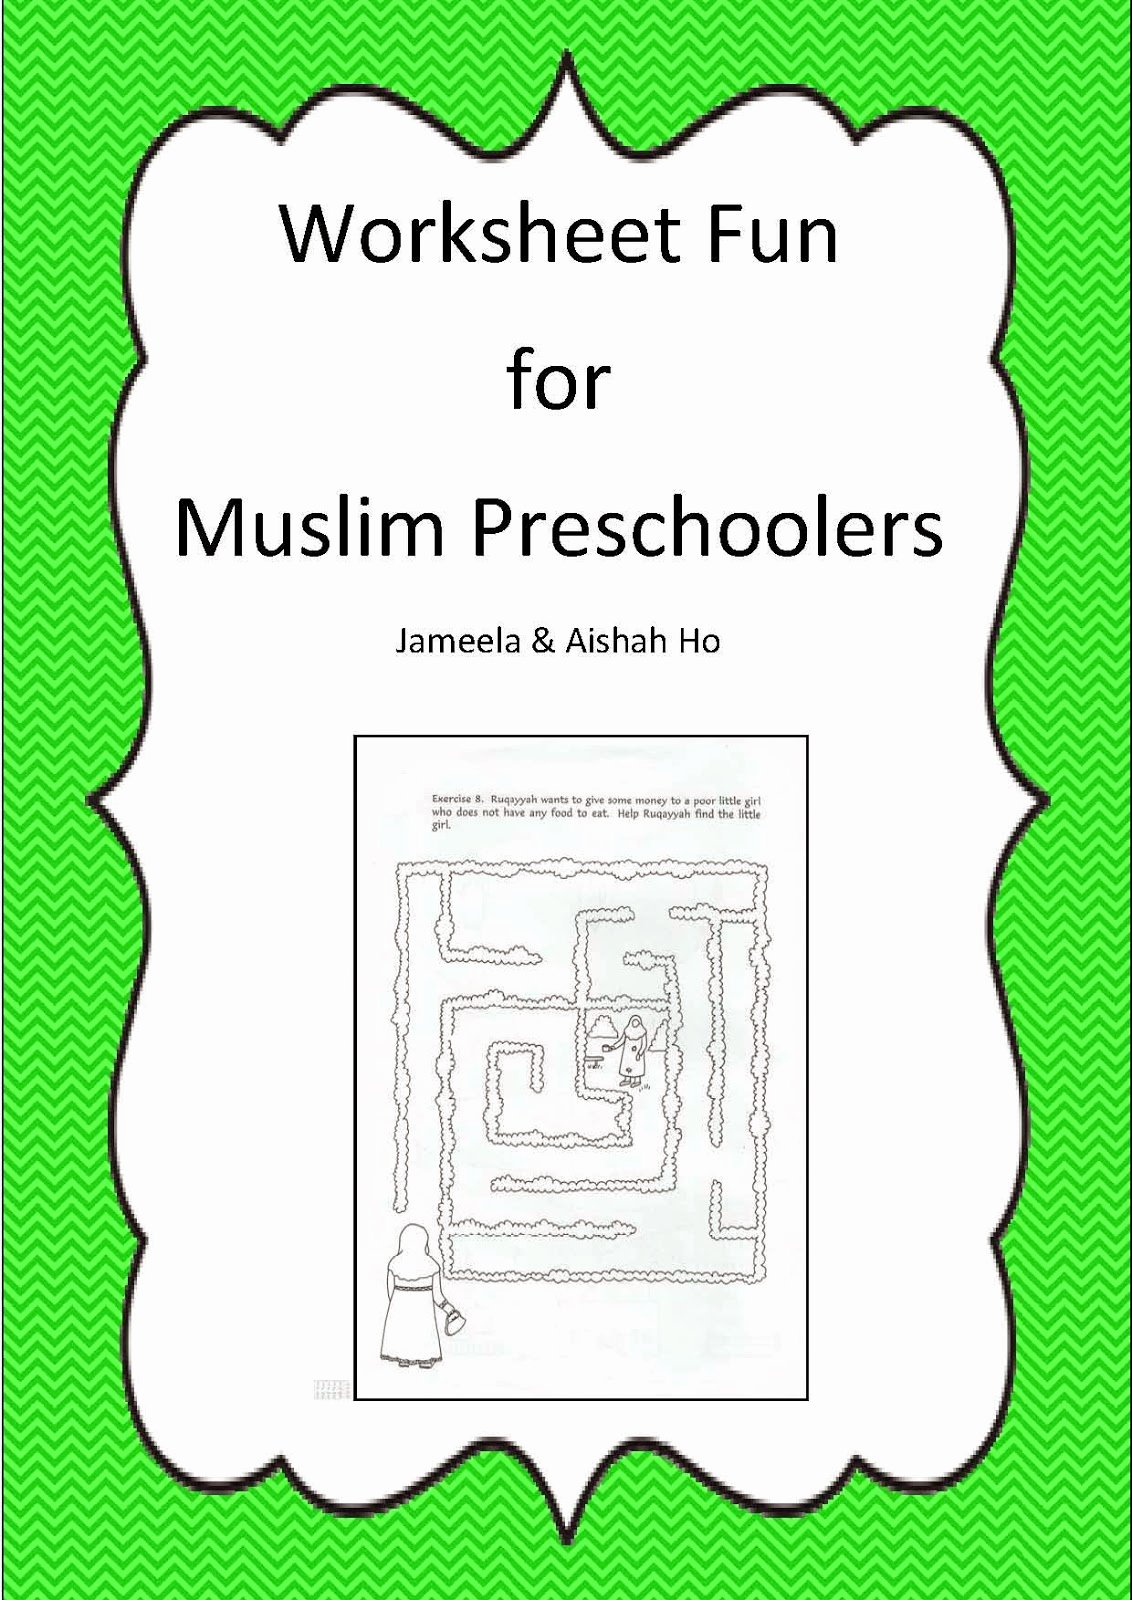 Islamic Worksheets for Preschoolers Lovely Ilma Education Free Download Worksheet Fun for Muslim